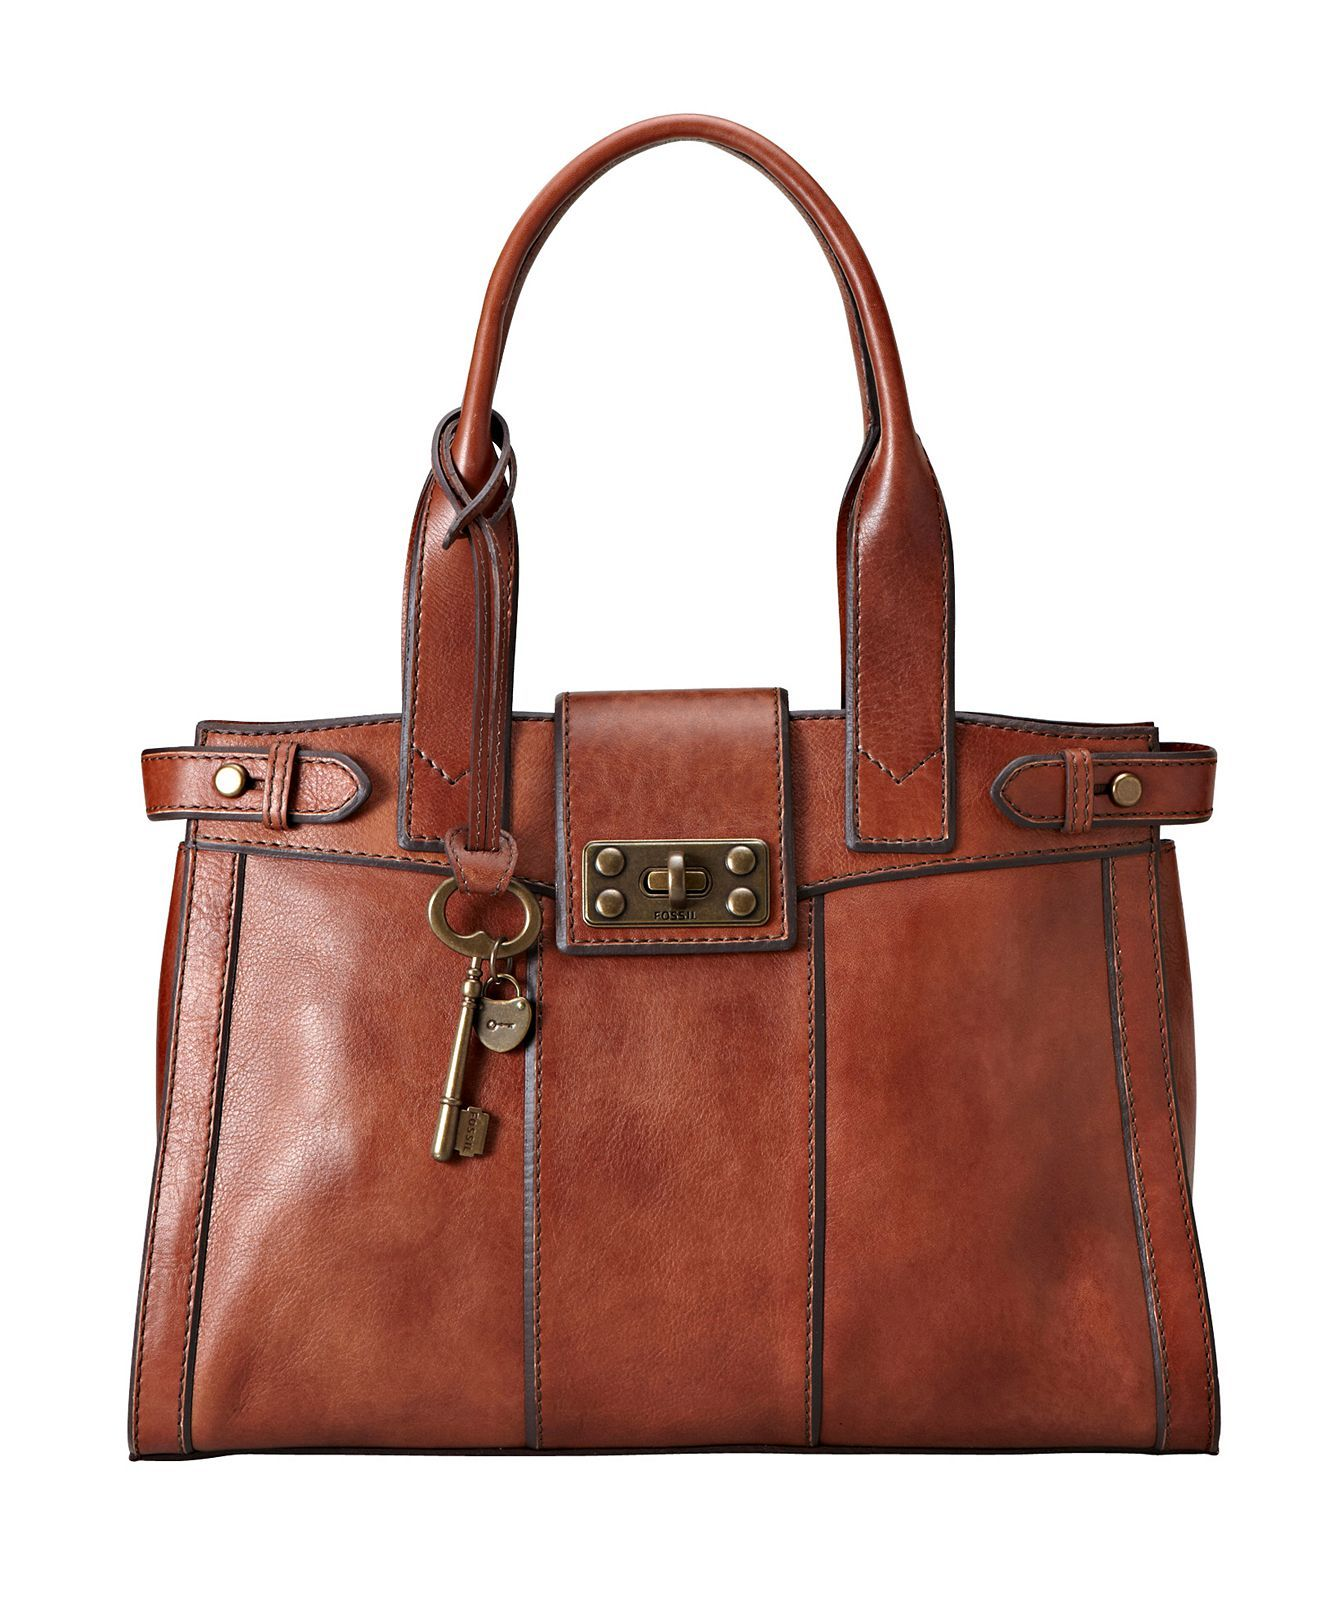 Fossil Another Bag I Issue Re That Vintage LoveScarfsboots lJ1cFuTK3